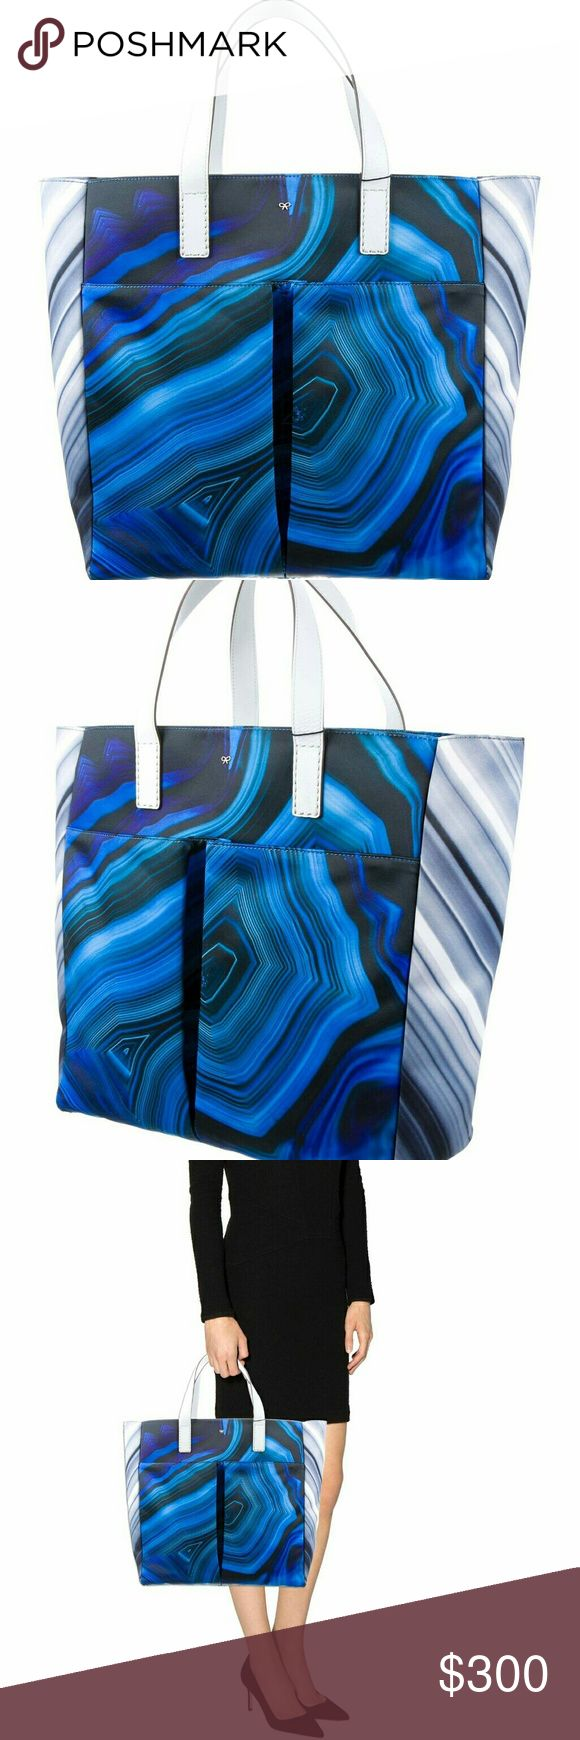 "Anya Hindmarch Nevis Satin Tote In perfect condition, stunning blue agate print with white leather trim.    14"" tall,  13.5"" wide, 4.5"" deep Anya Hindmarch Bags Totes"